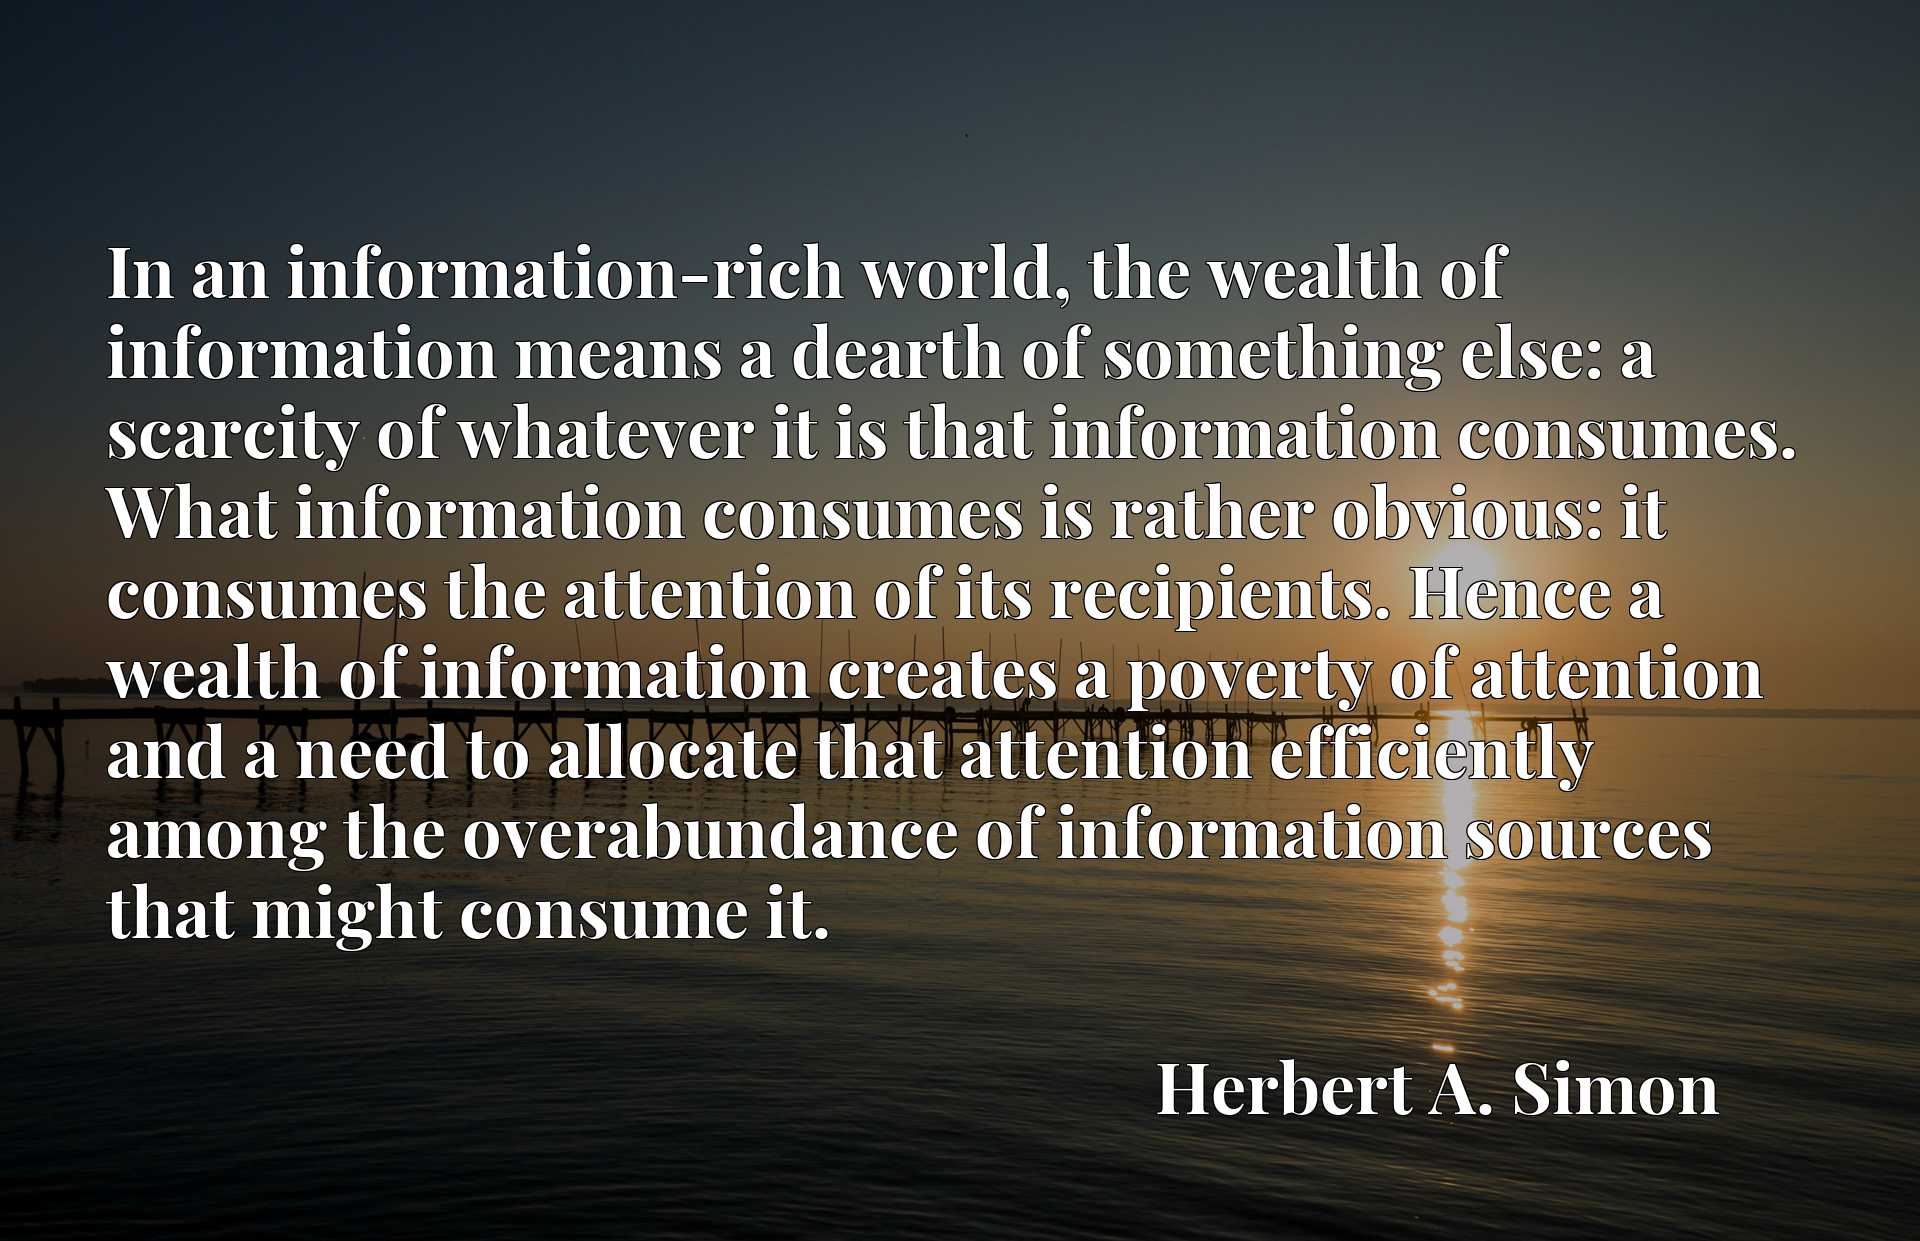 In an information-rich world, the wealth of information means a dearth of something else: a scarcity of whatever it is that information consumes. What information consumes is rather obvious: it consumes the attention of its recipients. Hence a wealth of information creates a poverty of attention and a need to allocate that attention efficiently among the overabundance of information sources that might consume it.